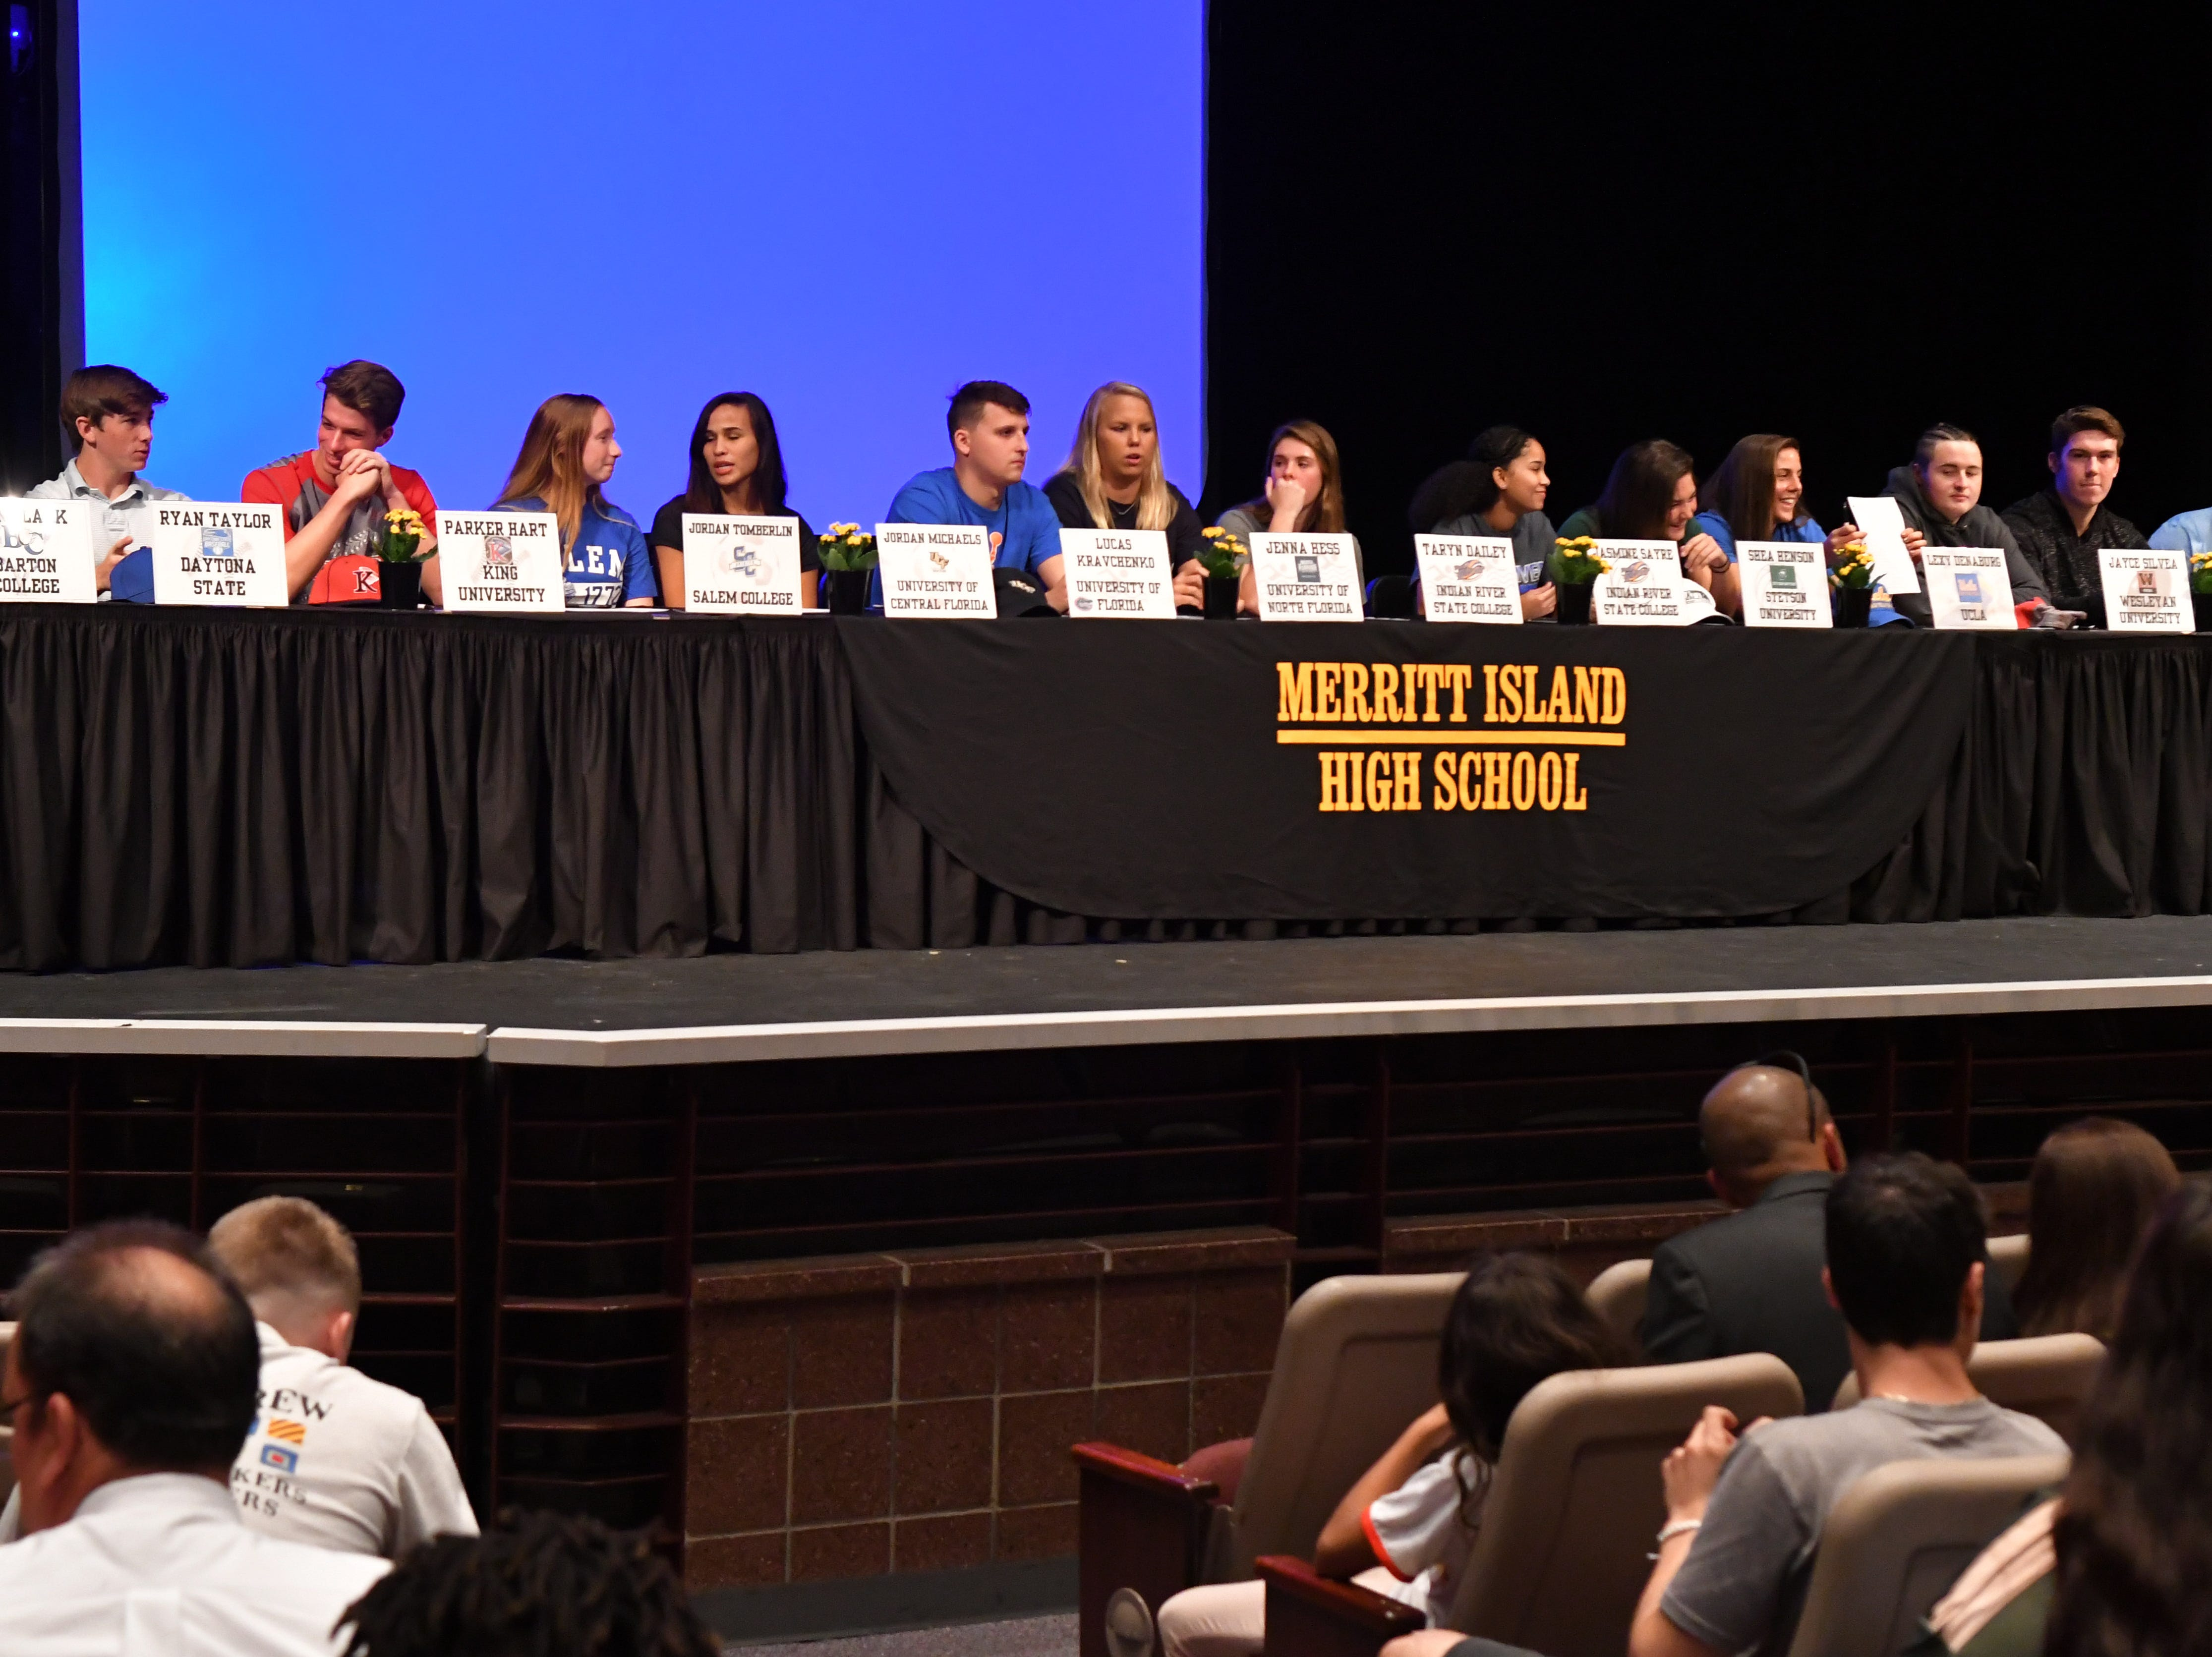 14 athletes from Merritt Island  High School in  signed letters of intent on Wednesday on stage in the school's auditorium.